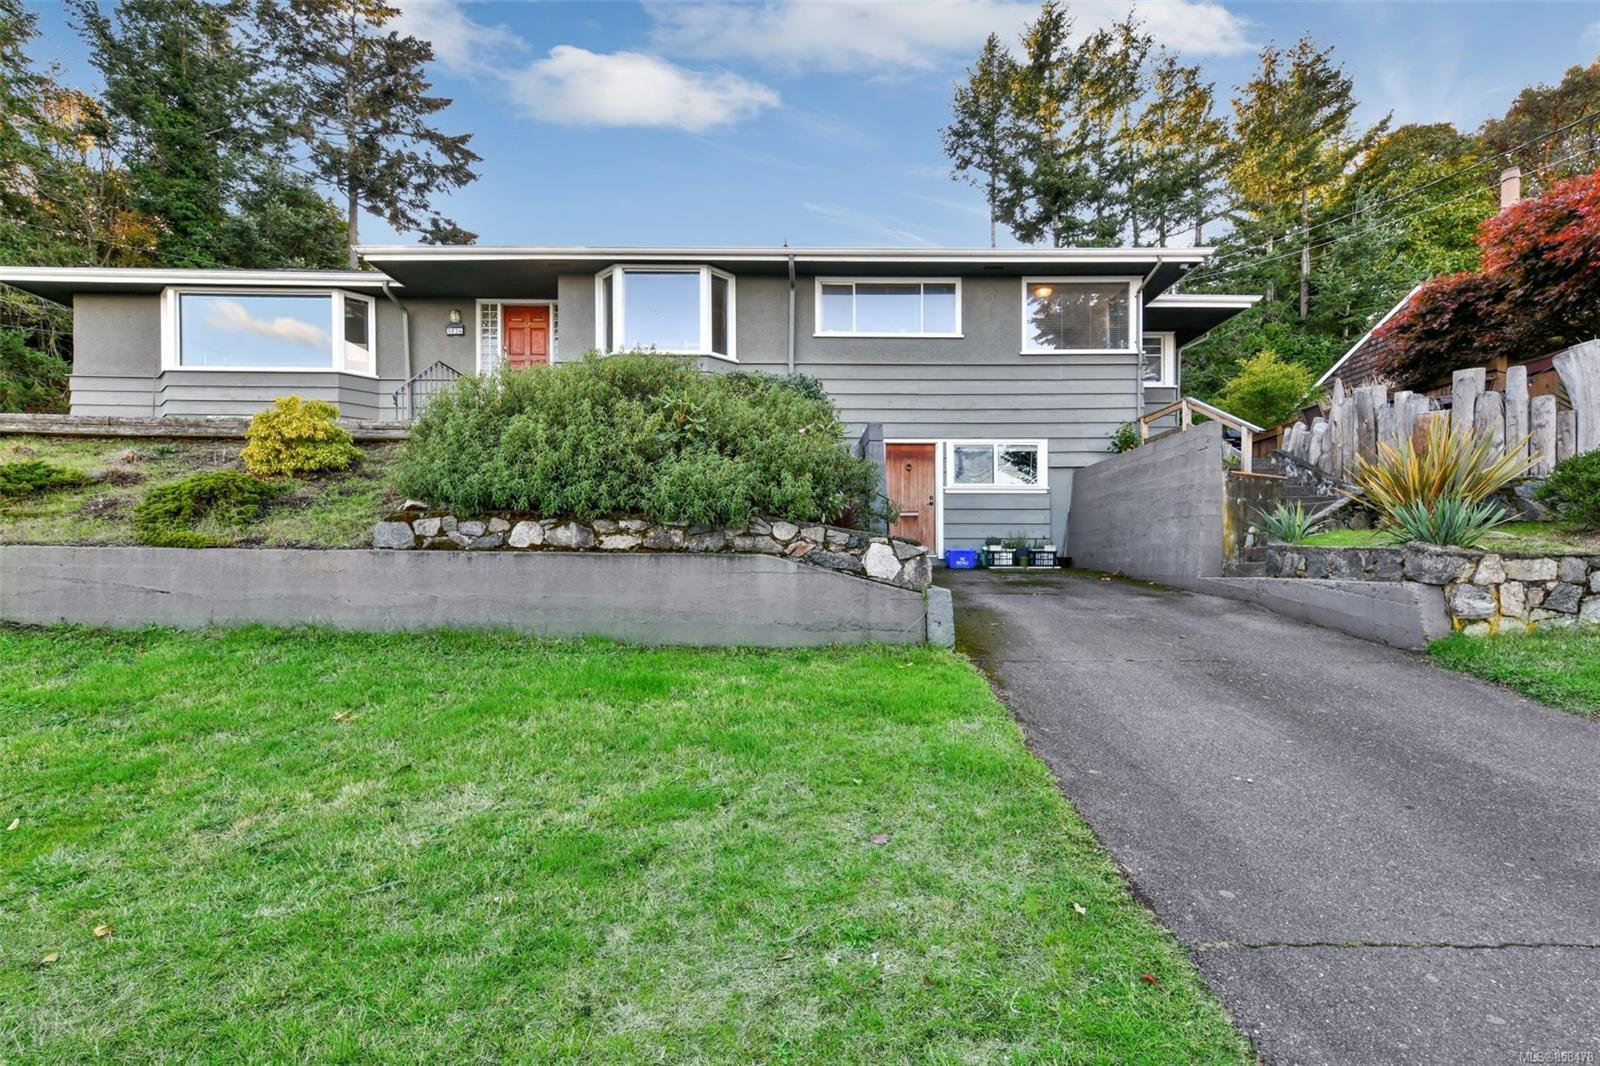 Main Photo: 5036 Lochside Dr in : SE Cordova Bay House for sale (Saanich East)  : MLS®# 858478